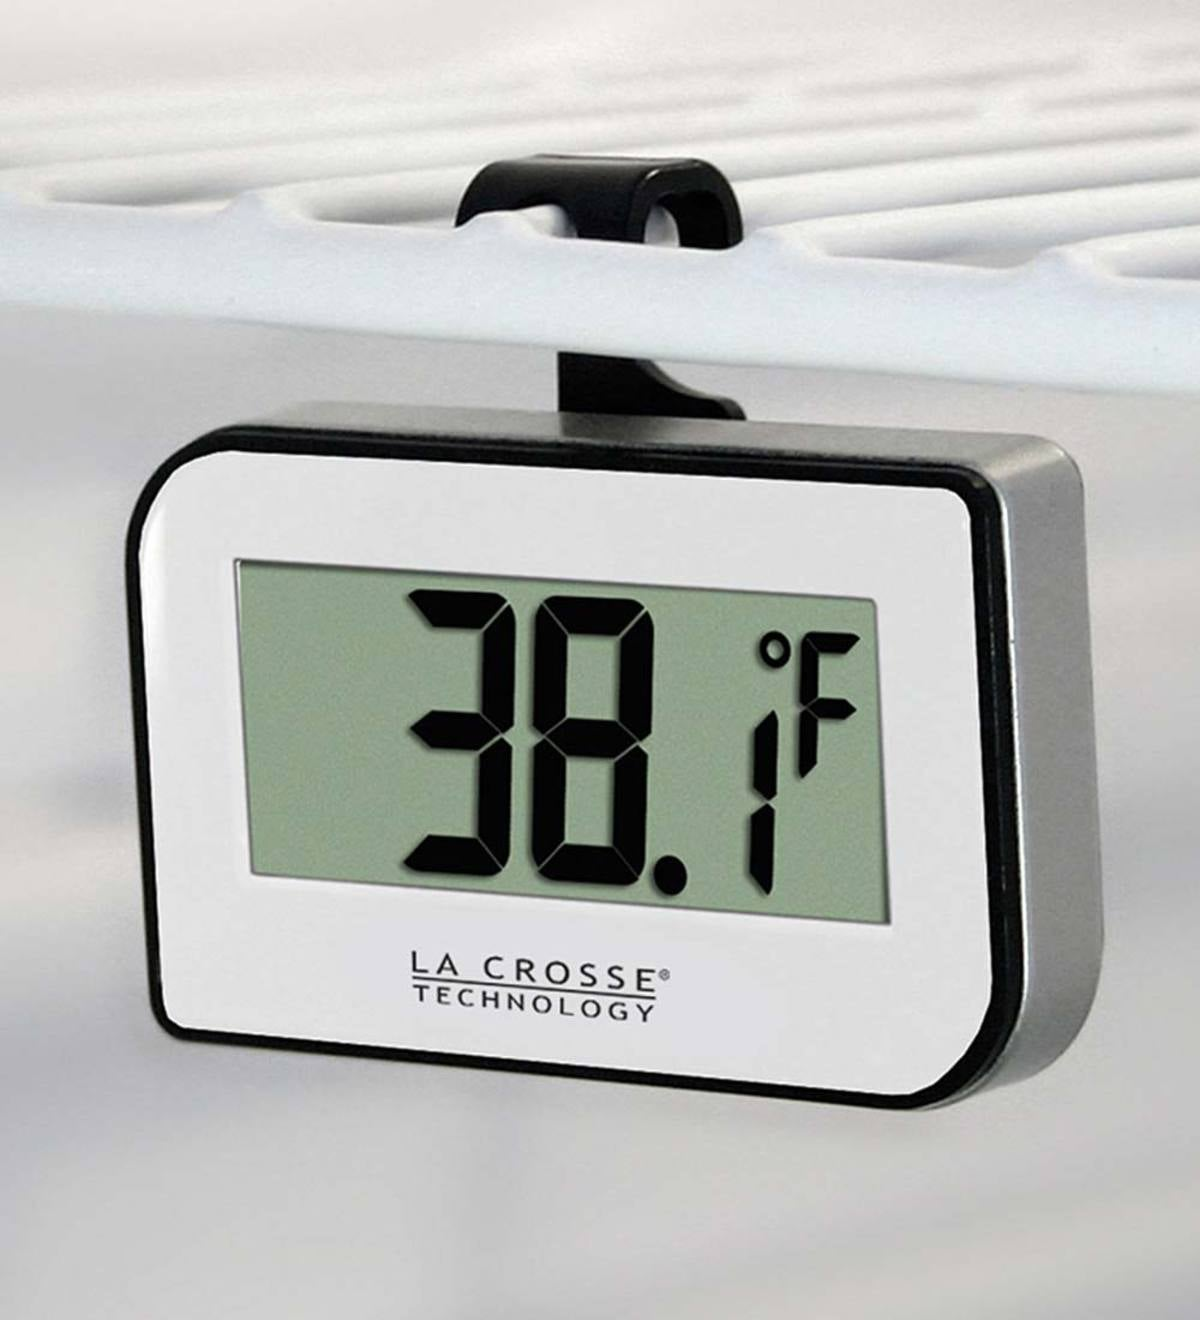 Refrigerator/Freezer Digital Thermometer